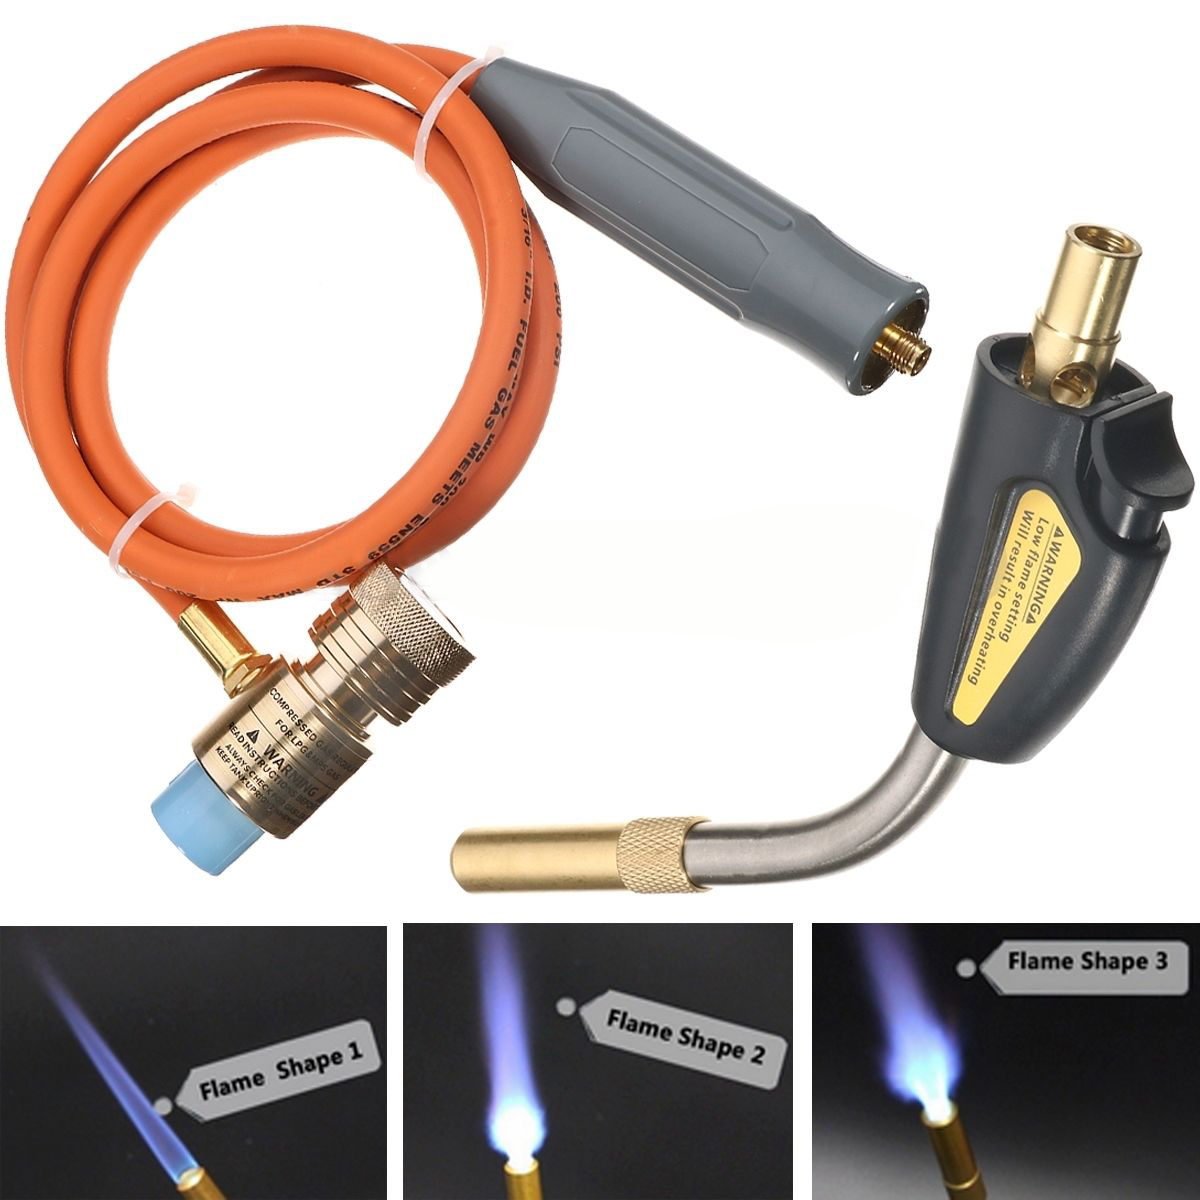 Mayitr Gas Self Ignition Plumbing Turbo Torch With Hose Adjustable Flame Control Solder Propane Welding Torch for Air Condition<br>